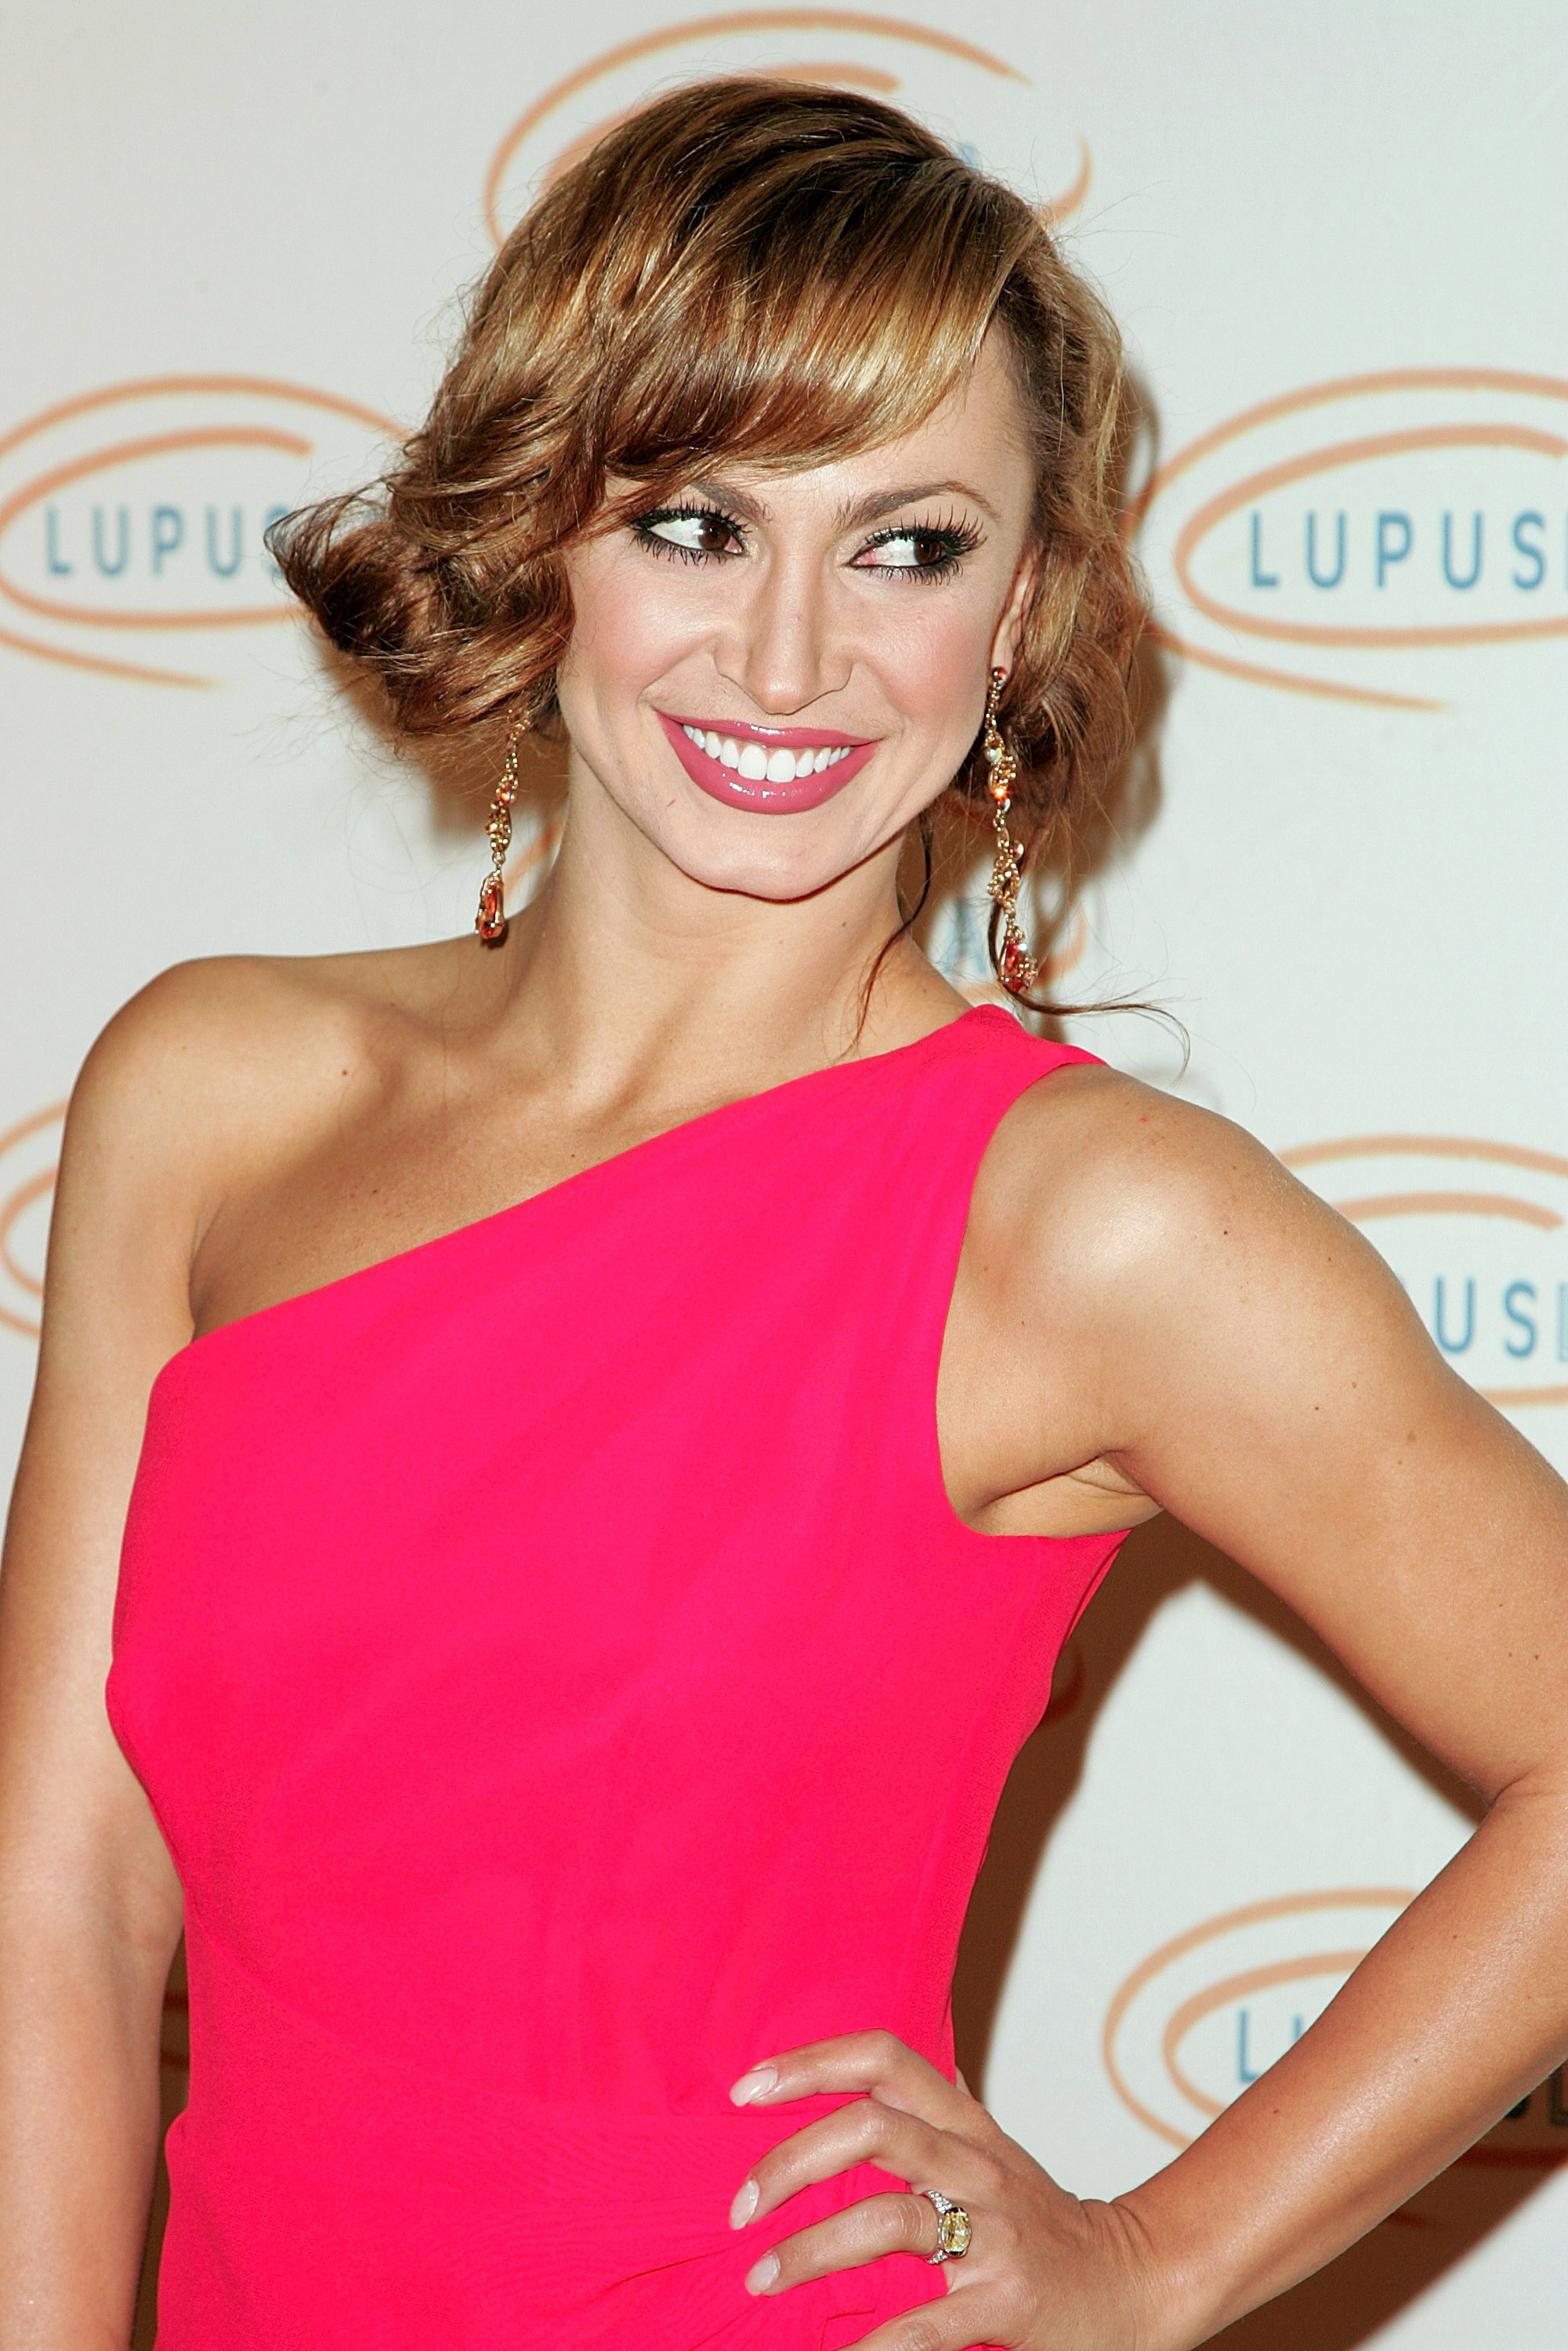 30399_Karina_Smirnoff_2008-11-07_-_Lupus_LA1s_Sixth_Annual_Hollywood_Bag_Ladies_Luncheon_in_Beverly_H_0193_122_767lo.jpg